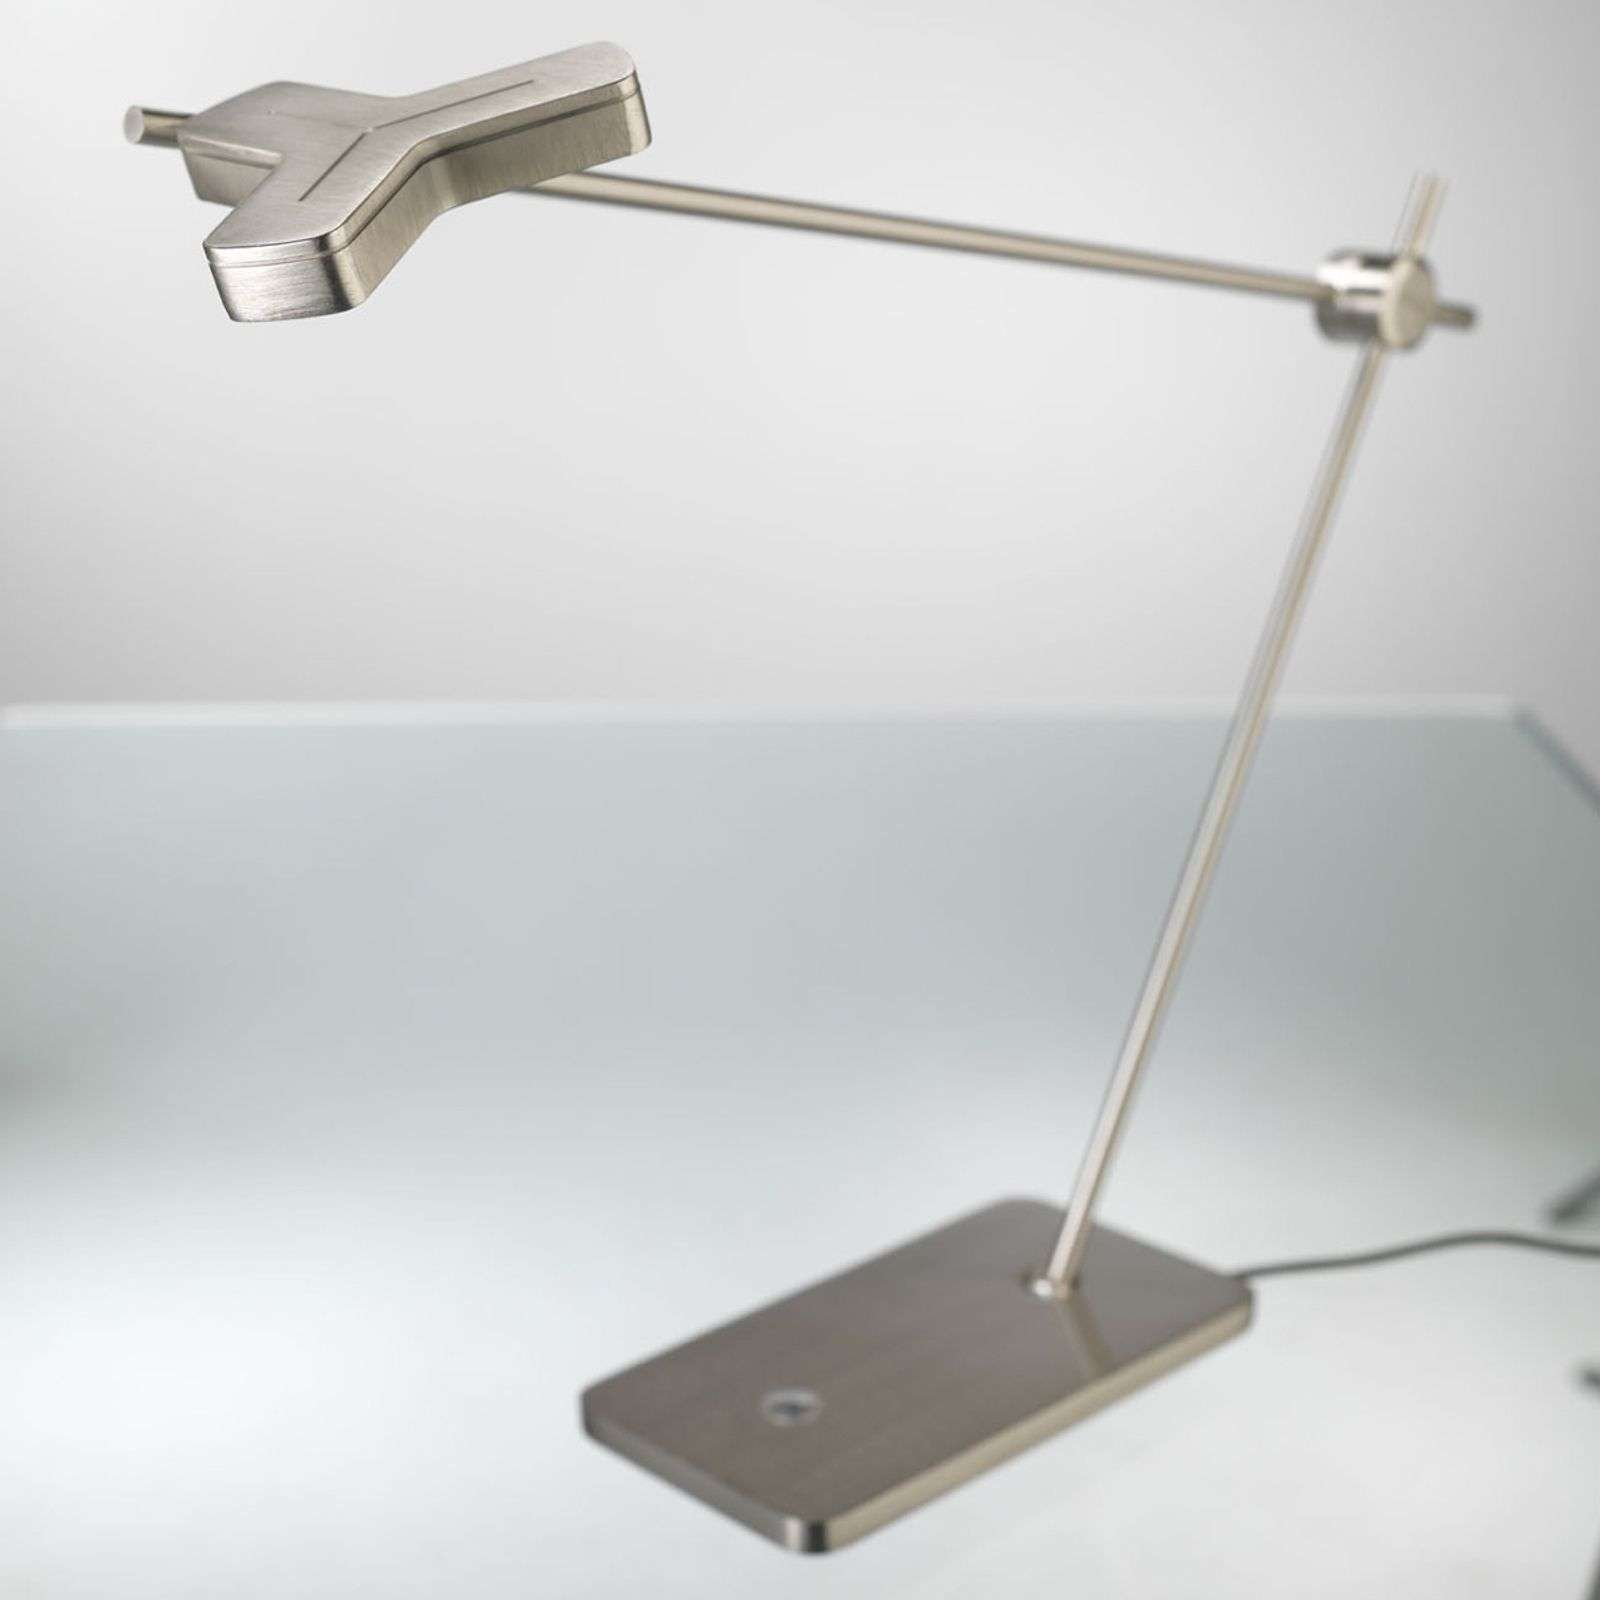 Superbe lampe à poser LED MOX M3010 nickel mat